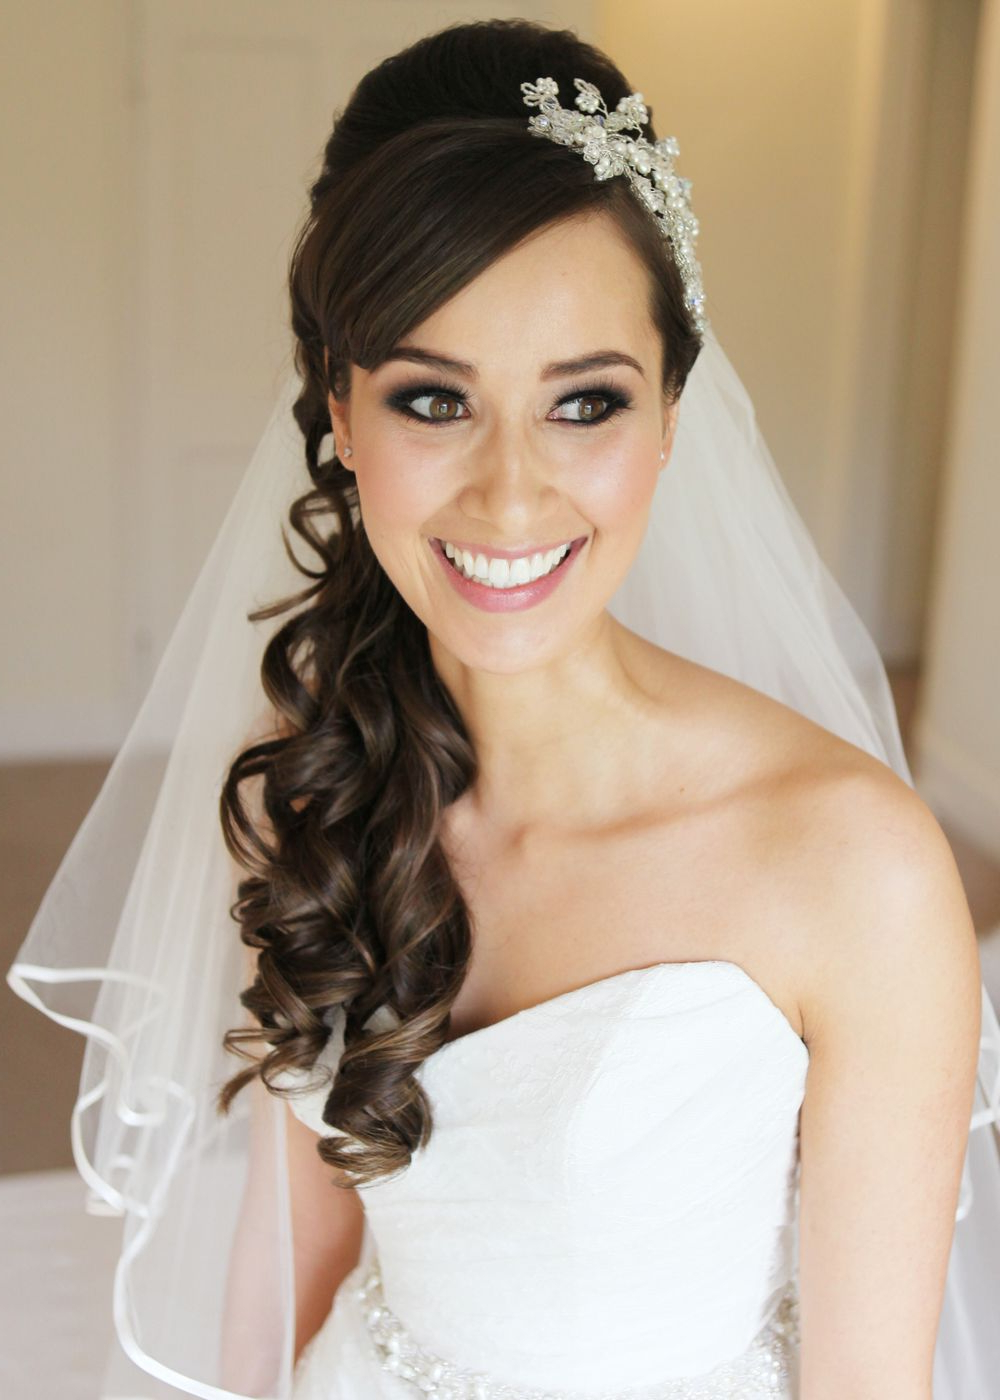 15 Fabulous Half Up Half Down Wedding Hairstyles (View 6 of 20)